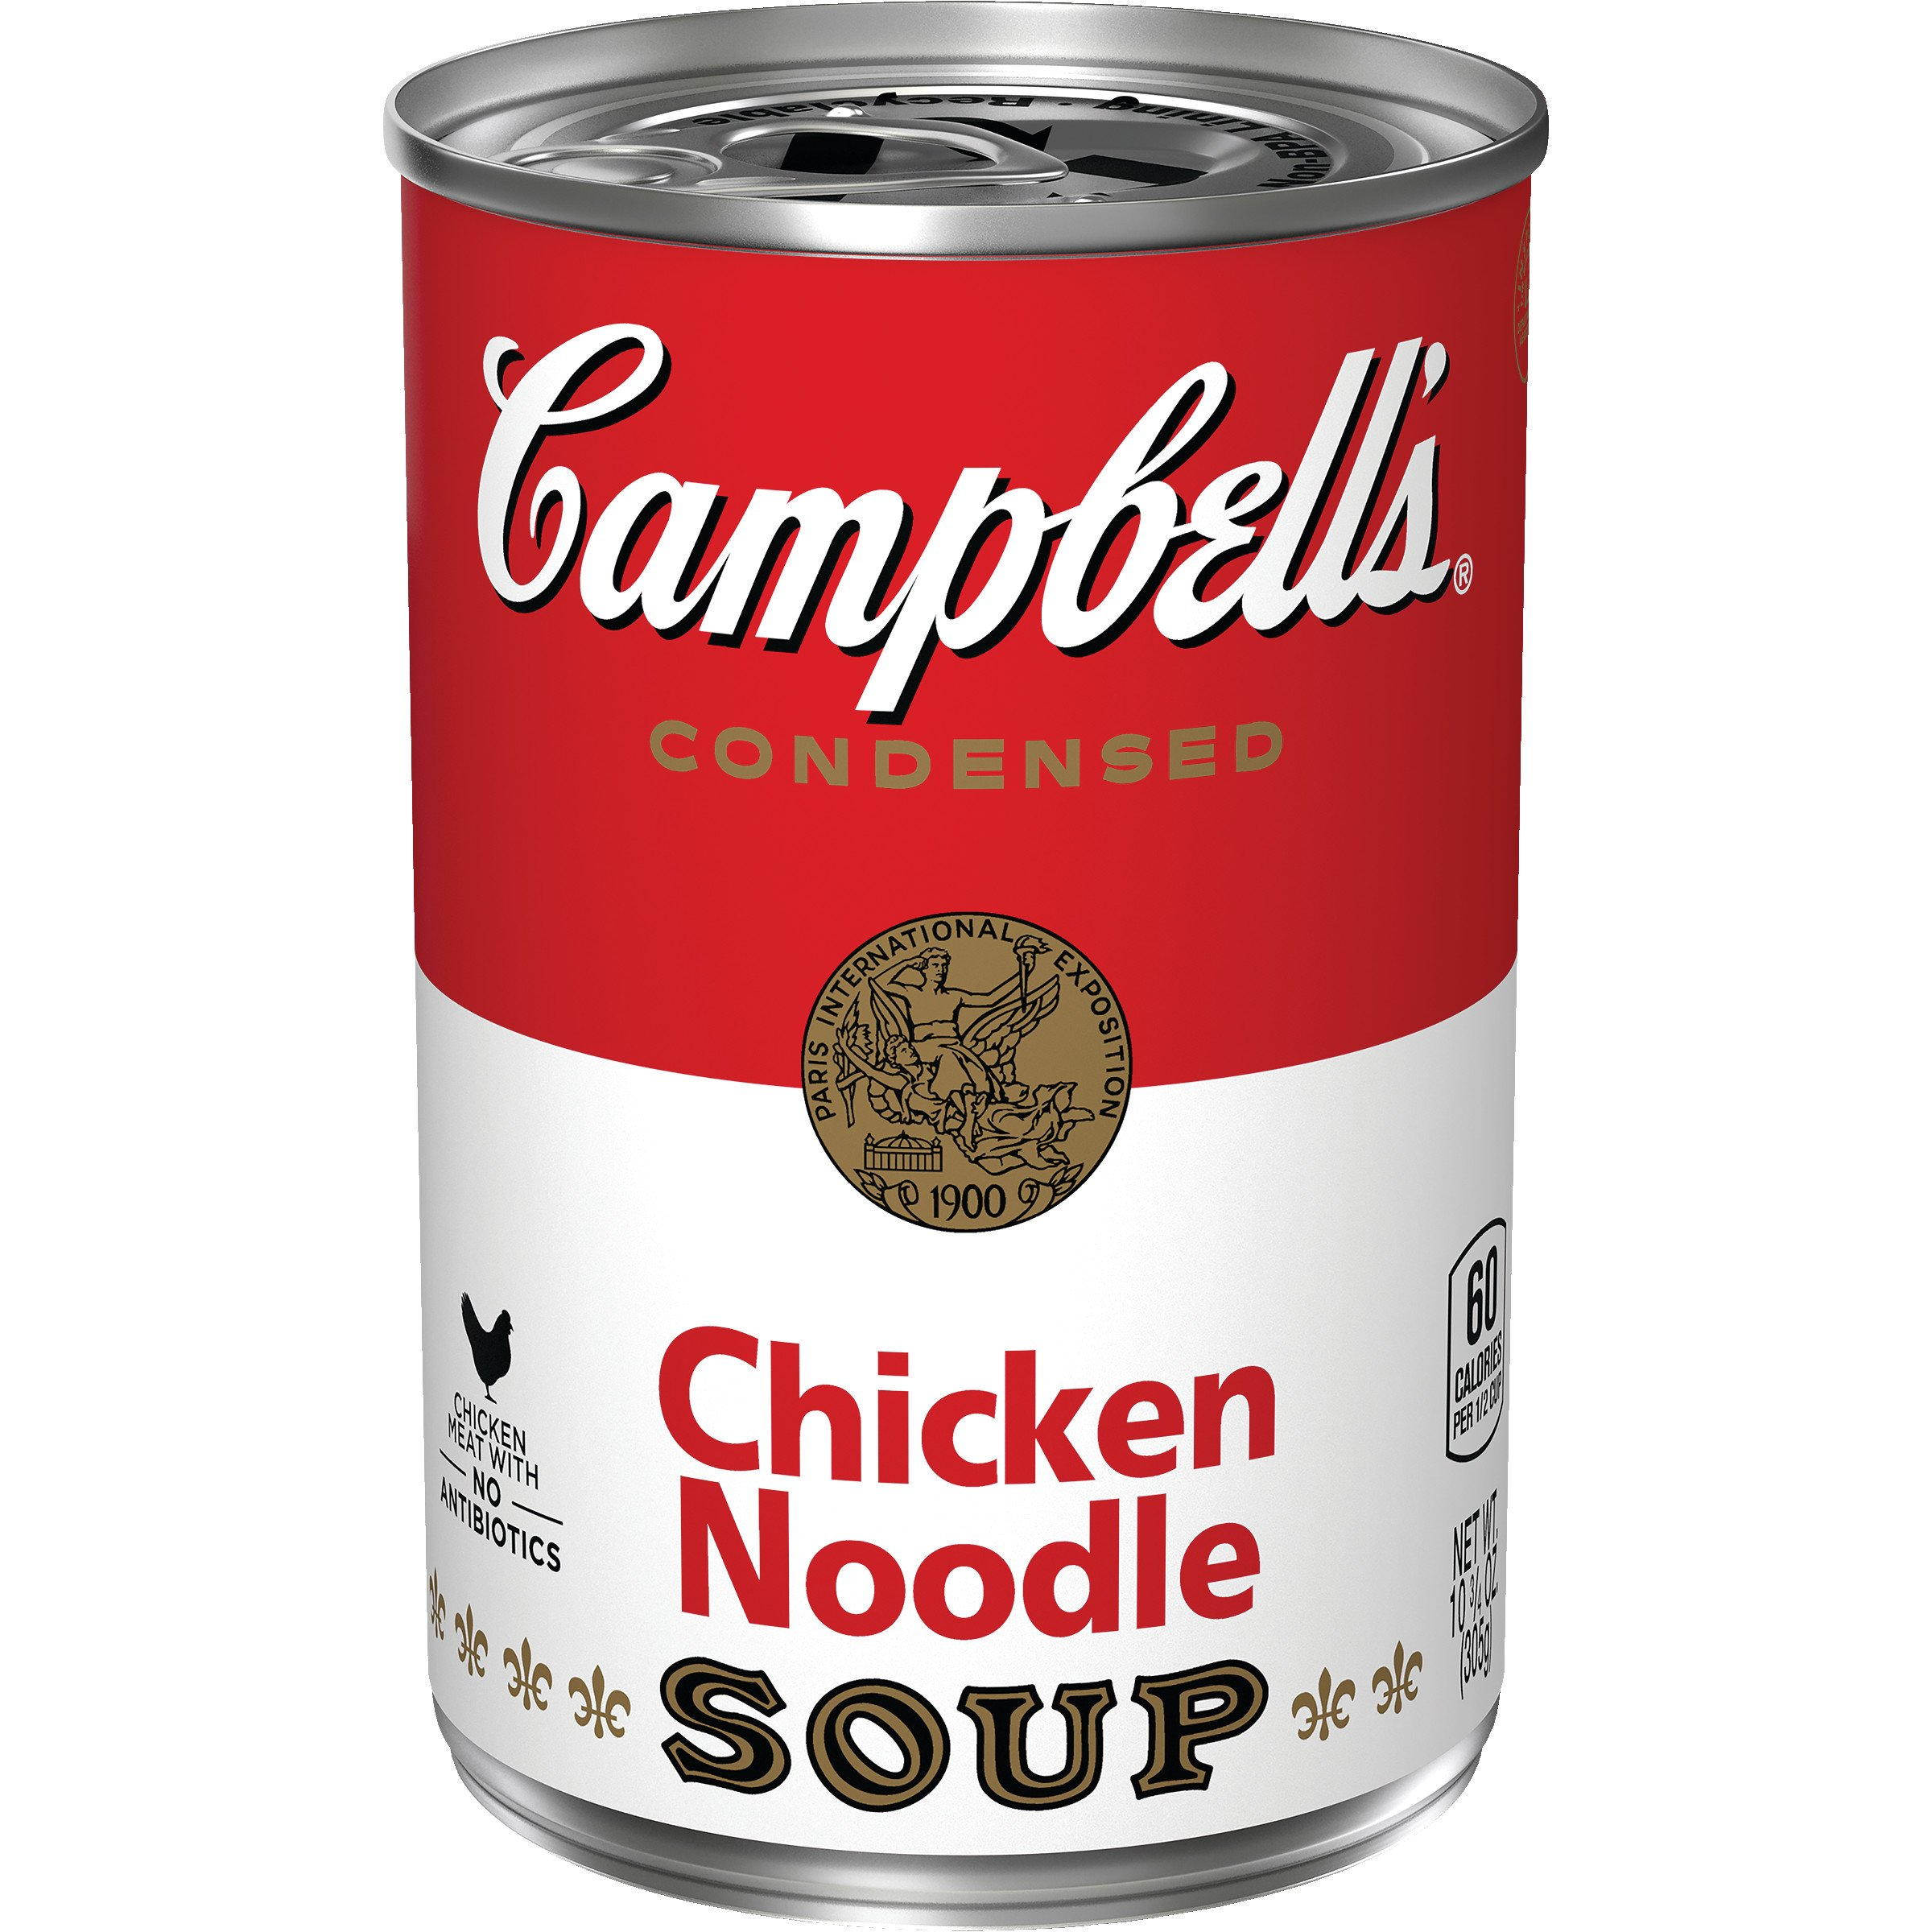 Campbell's Condensed Chicken Noodle Soup, 10.75 oz.